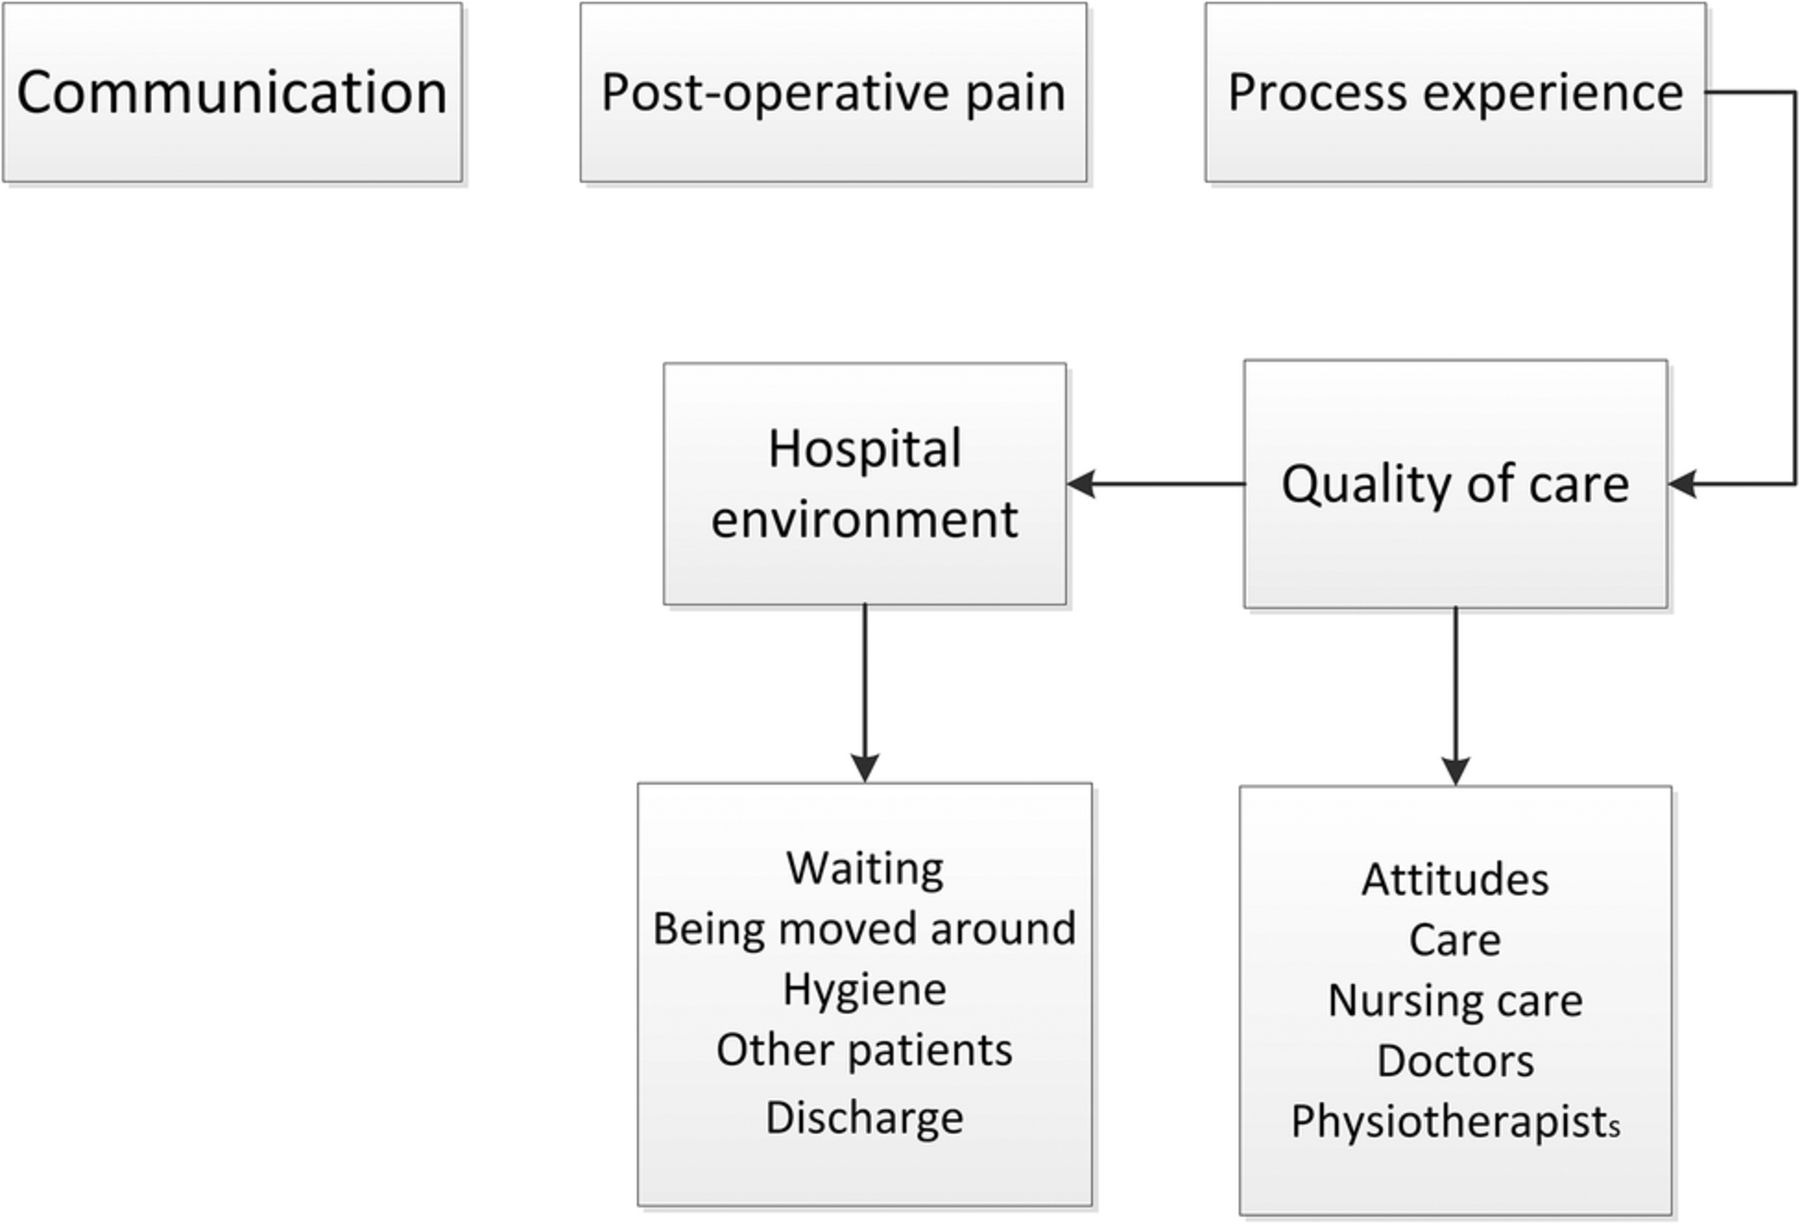 Factors that shape the patient's hospital experience and ... Qualitative Data Analysis Process